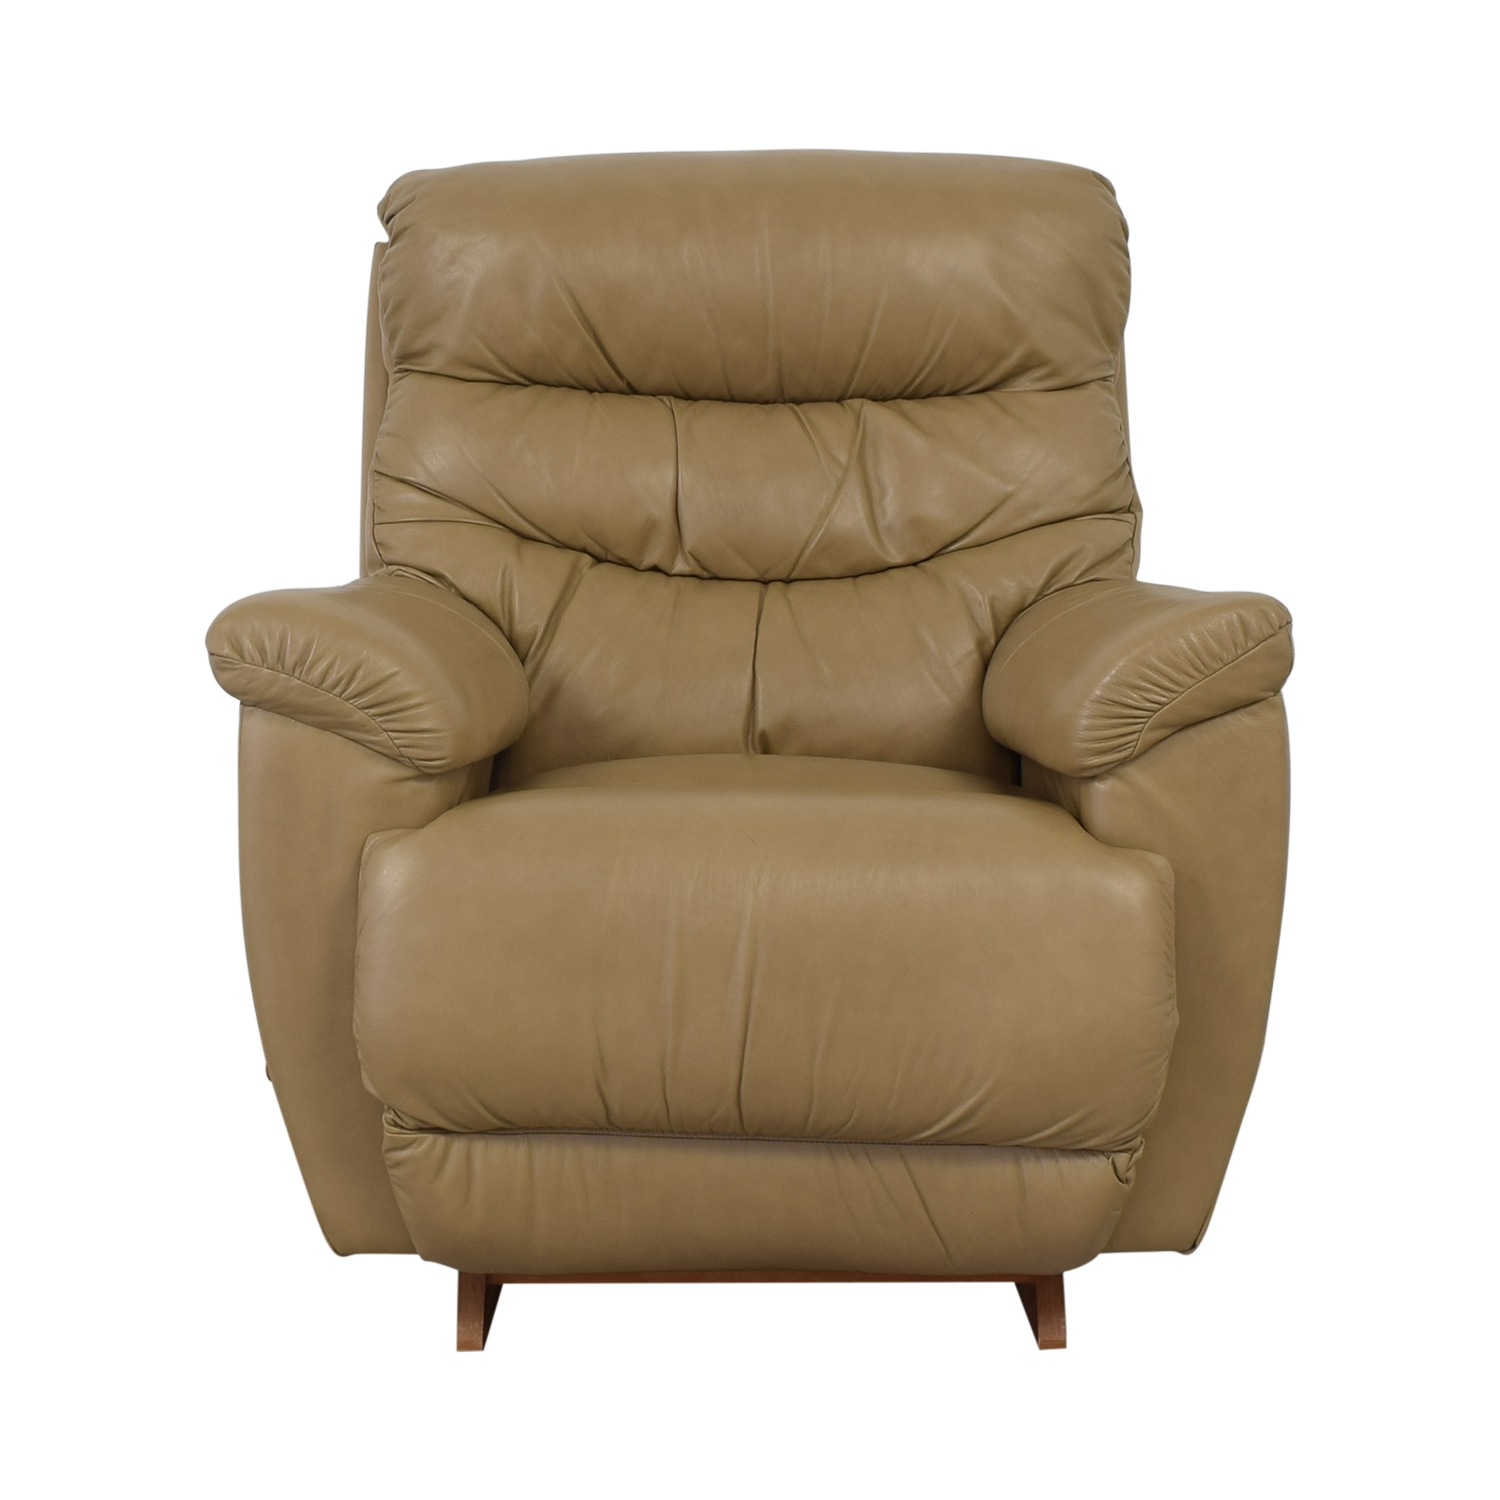 La-Z-Boy La-Z-Boy Leather Recliner ma